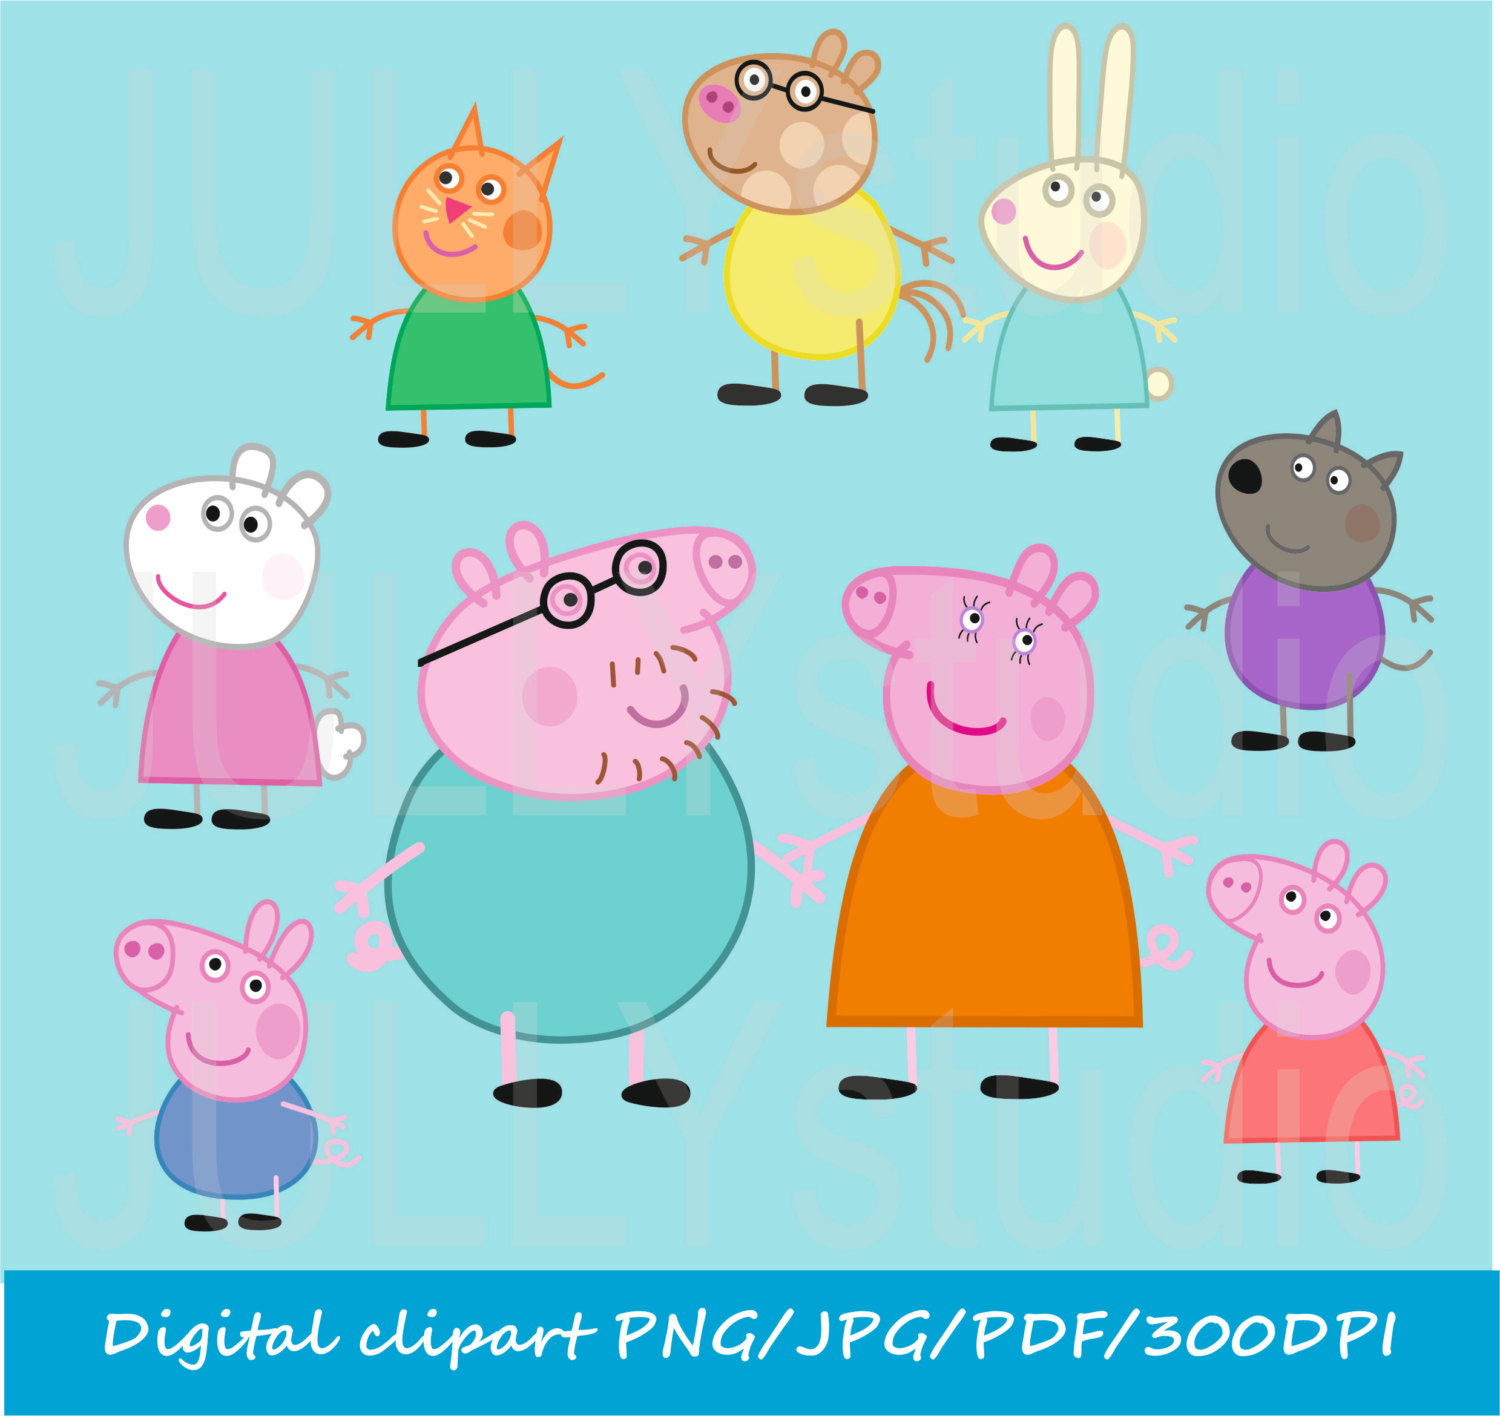 Free Download Eps Files Vector-Free Download Eps Files Vector-14